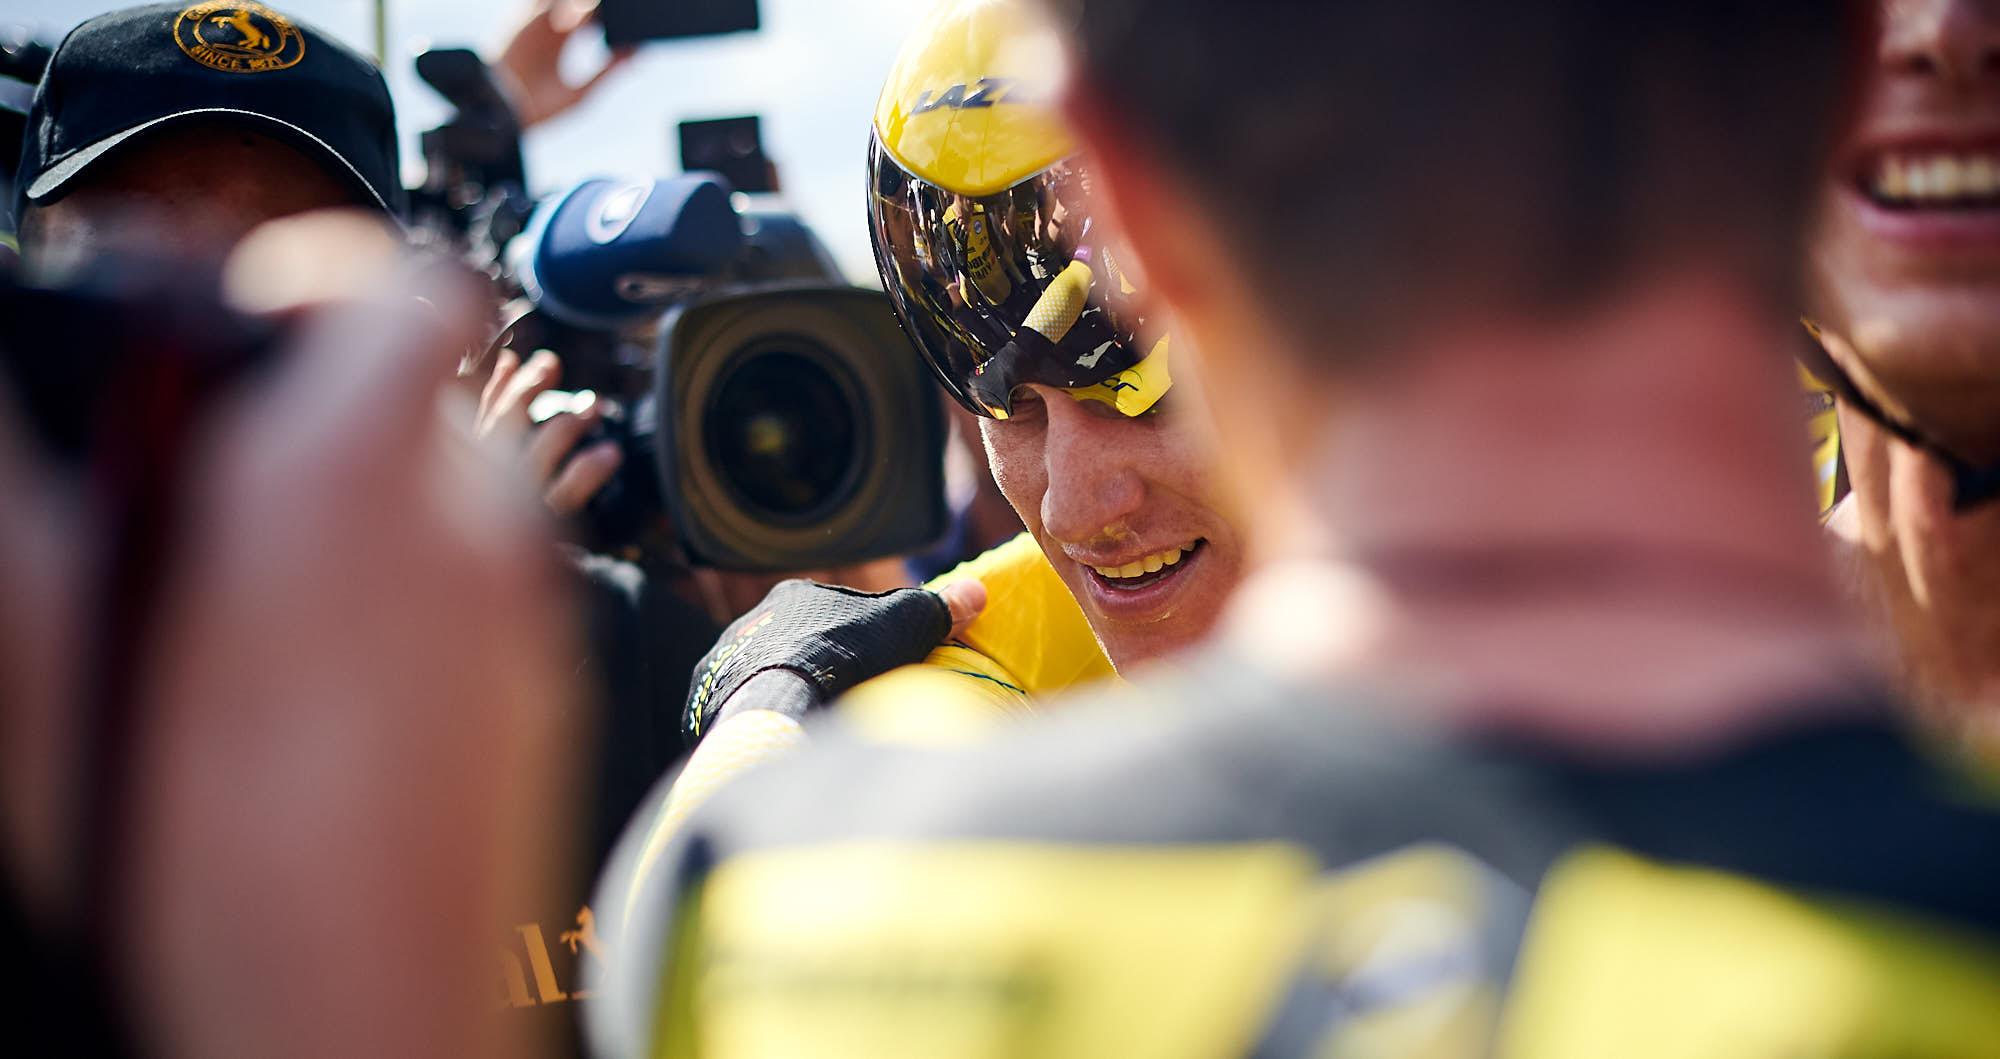 Mike Teunissen wearing the yellow jersey after the 2019 Tour de France time trial